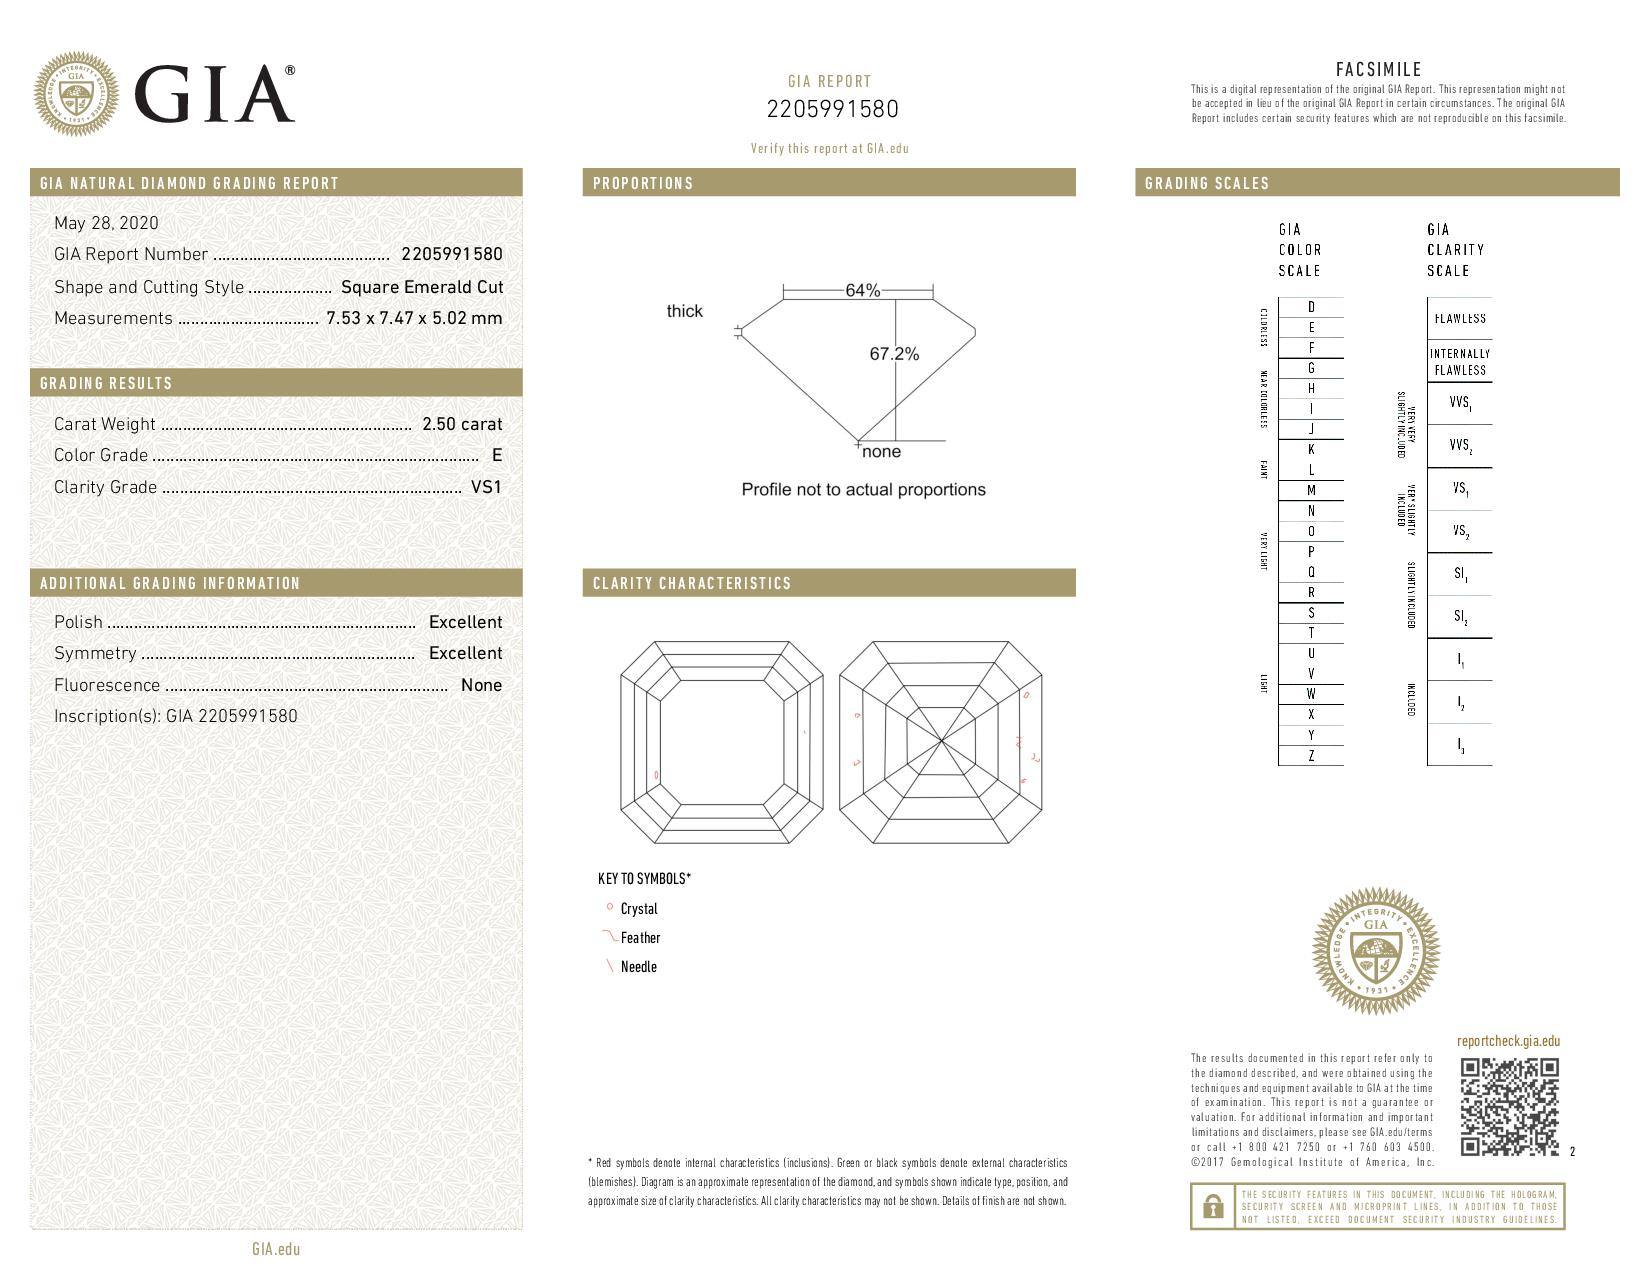 This is a 2.50 carat asscher shape, E color, VS1 clarity natural diamond accompanied by a GIA grading report.